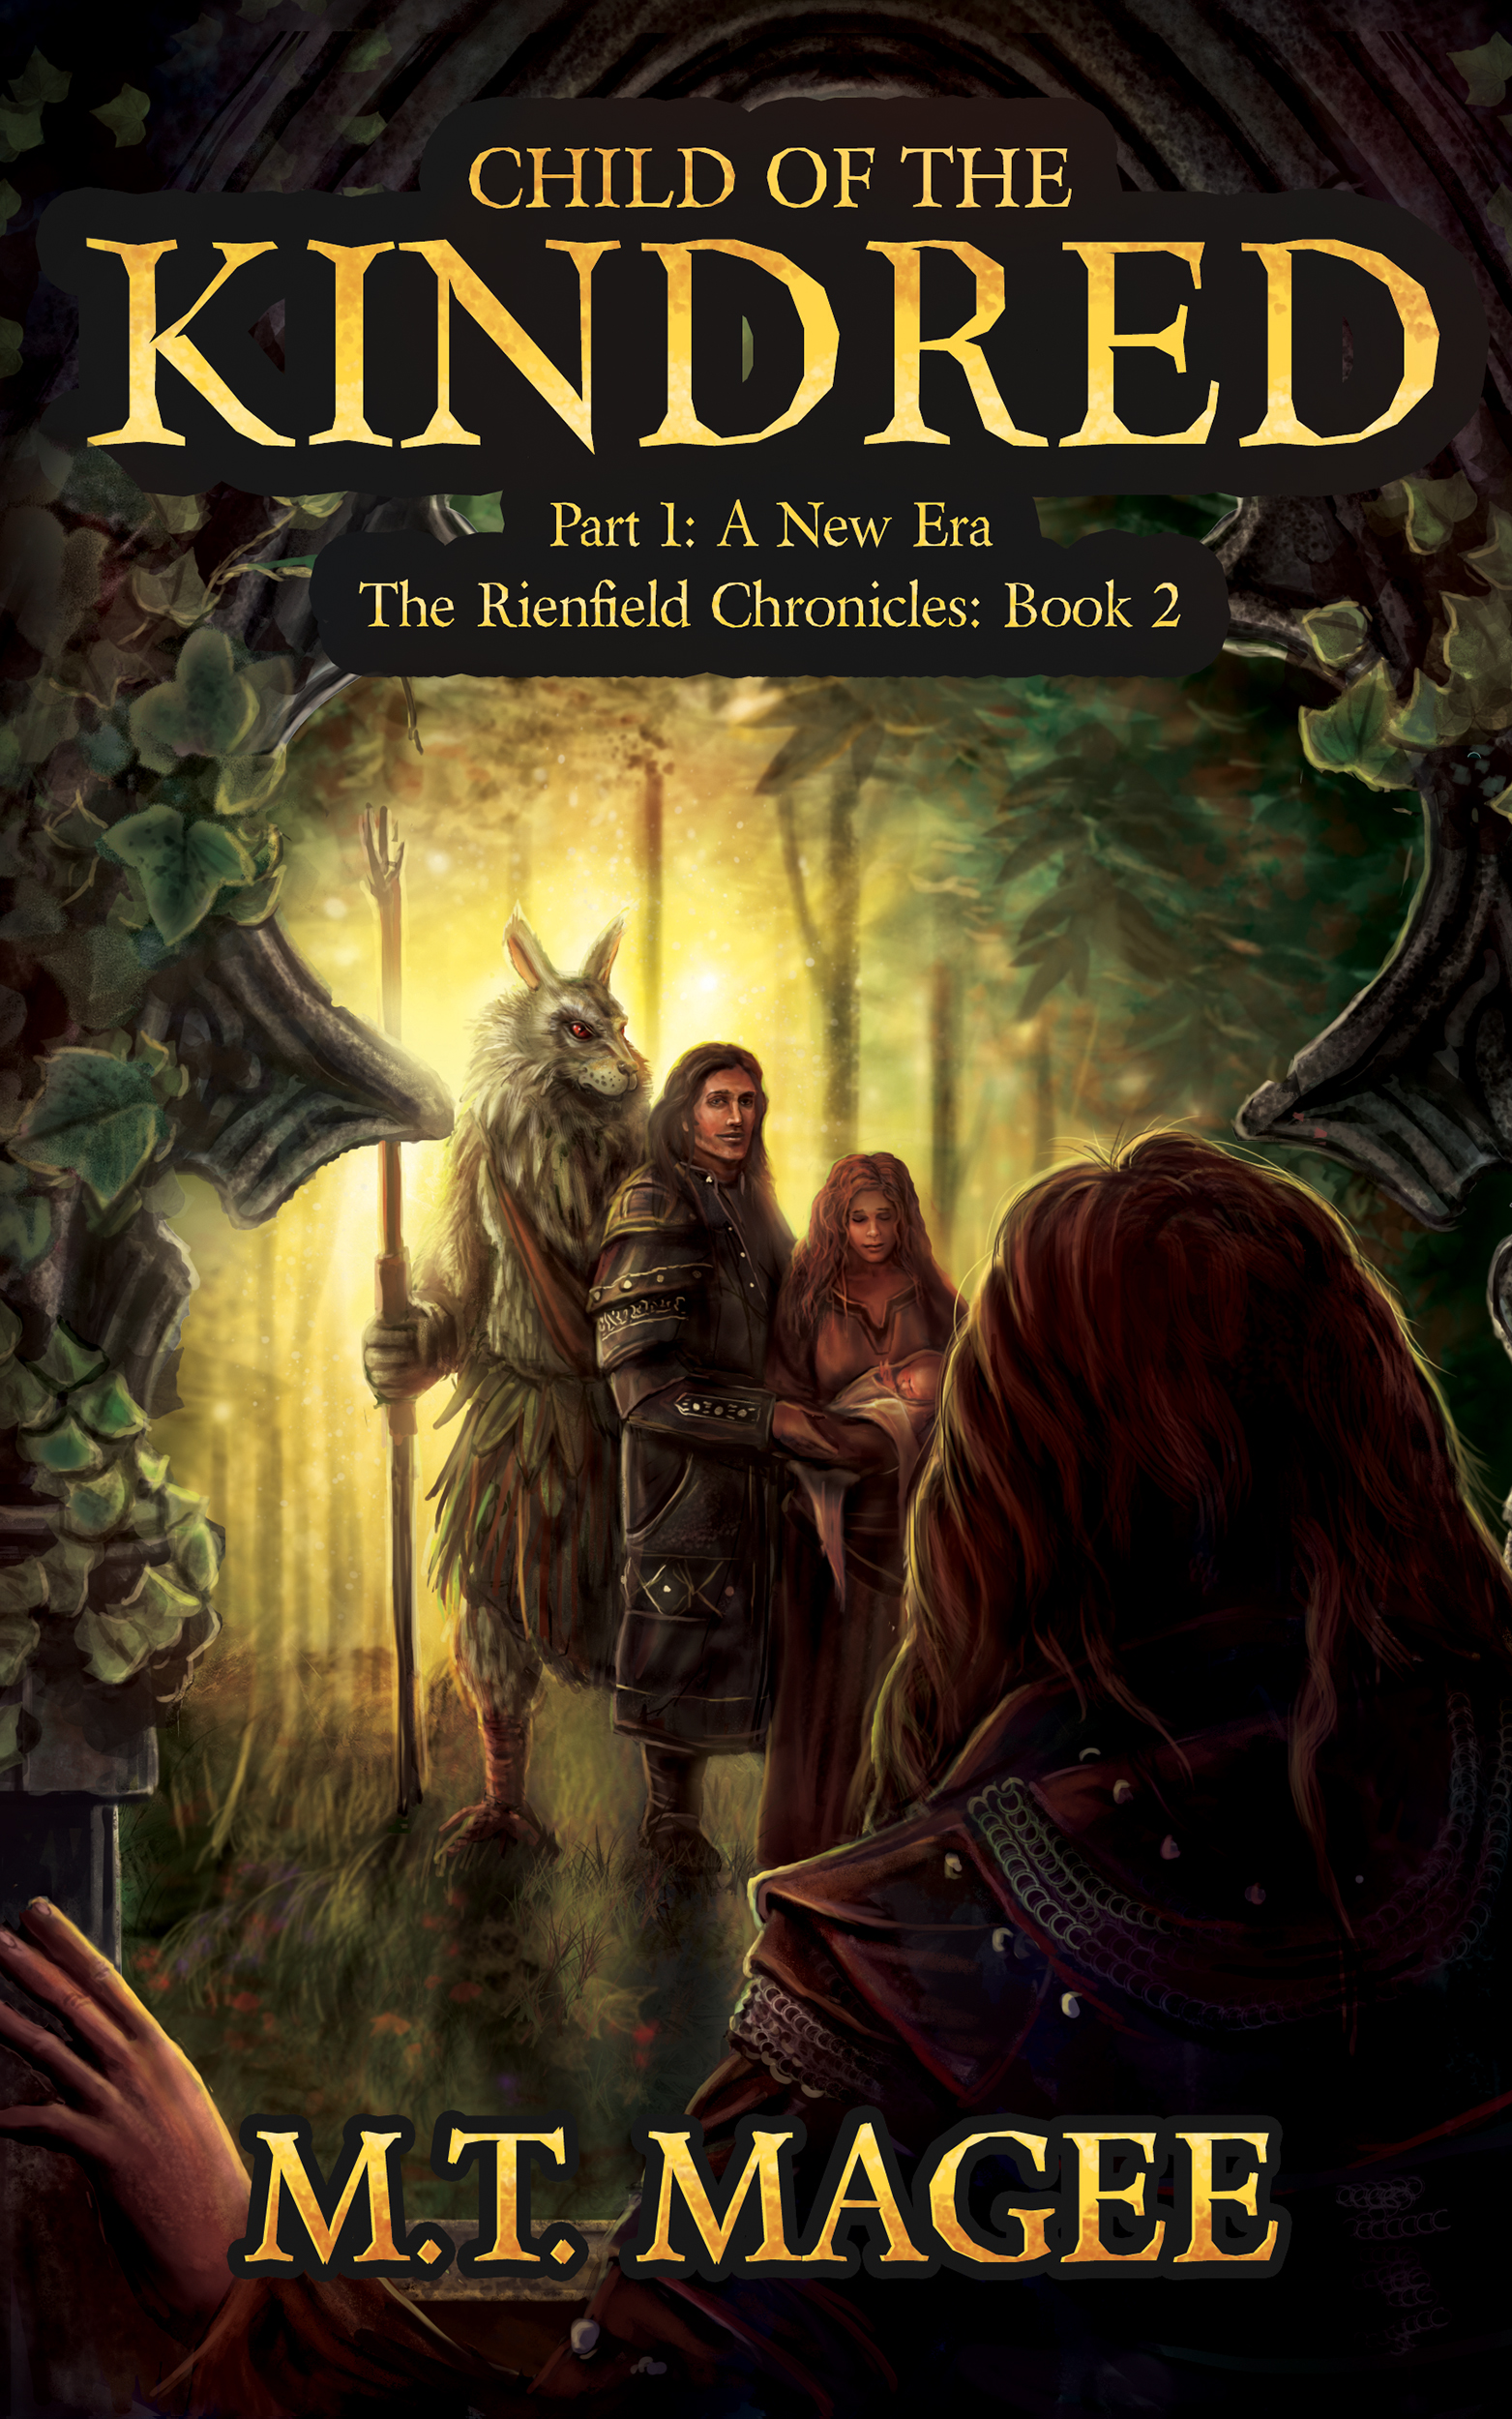 Book Cover Fantasy ~ Fantasy book covers the rienfield chronicles noble